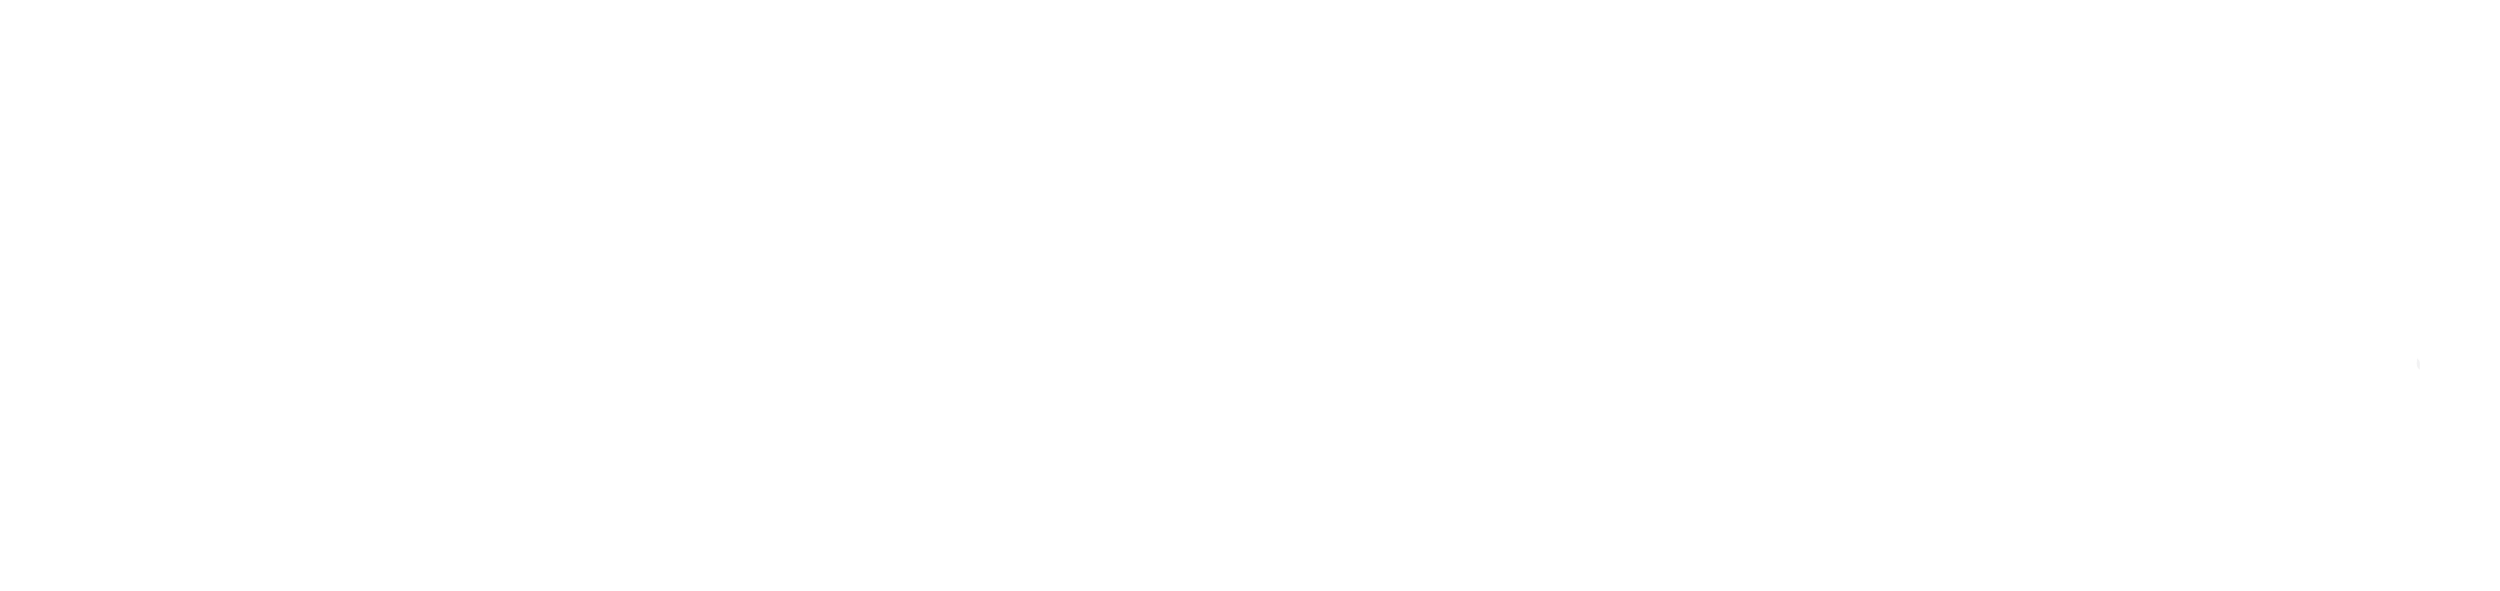 download+this+guide+to+learn+how+to+drive+productivity+and+employee+engagement+during+your+workplace+relocation.png